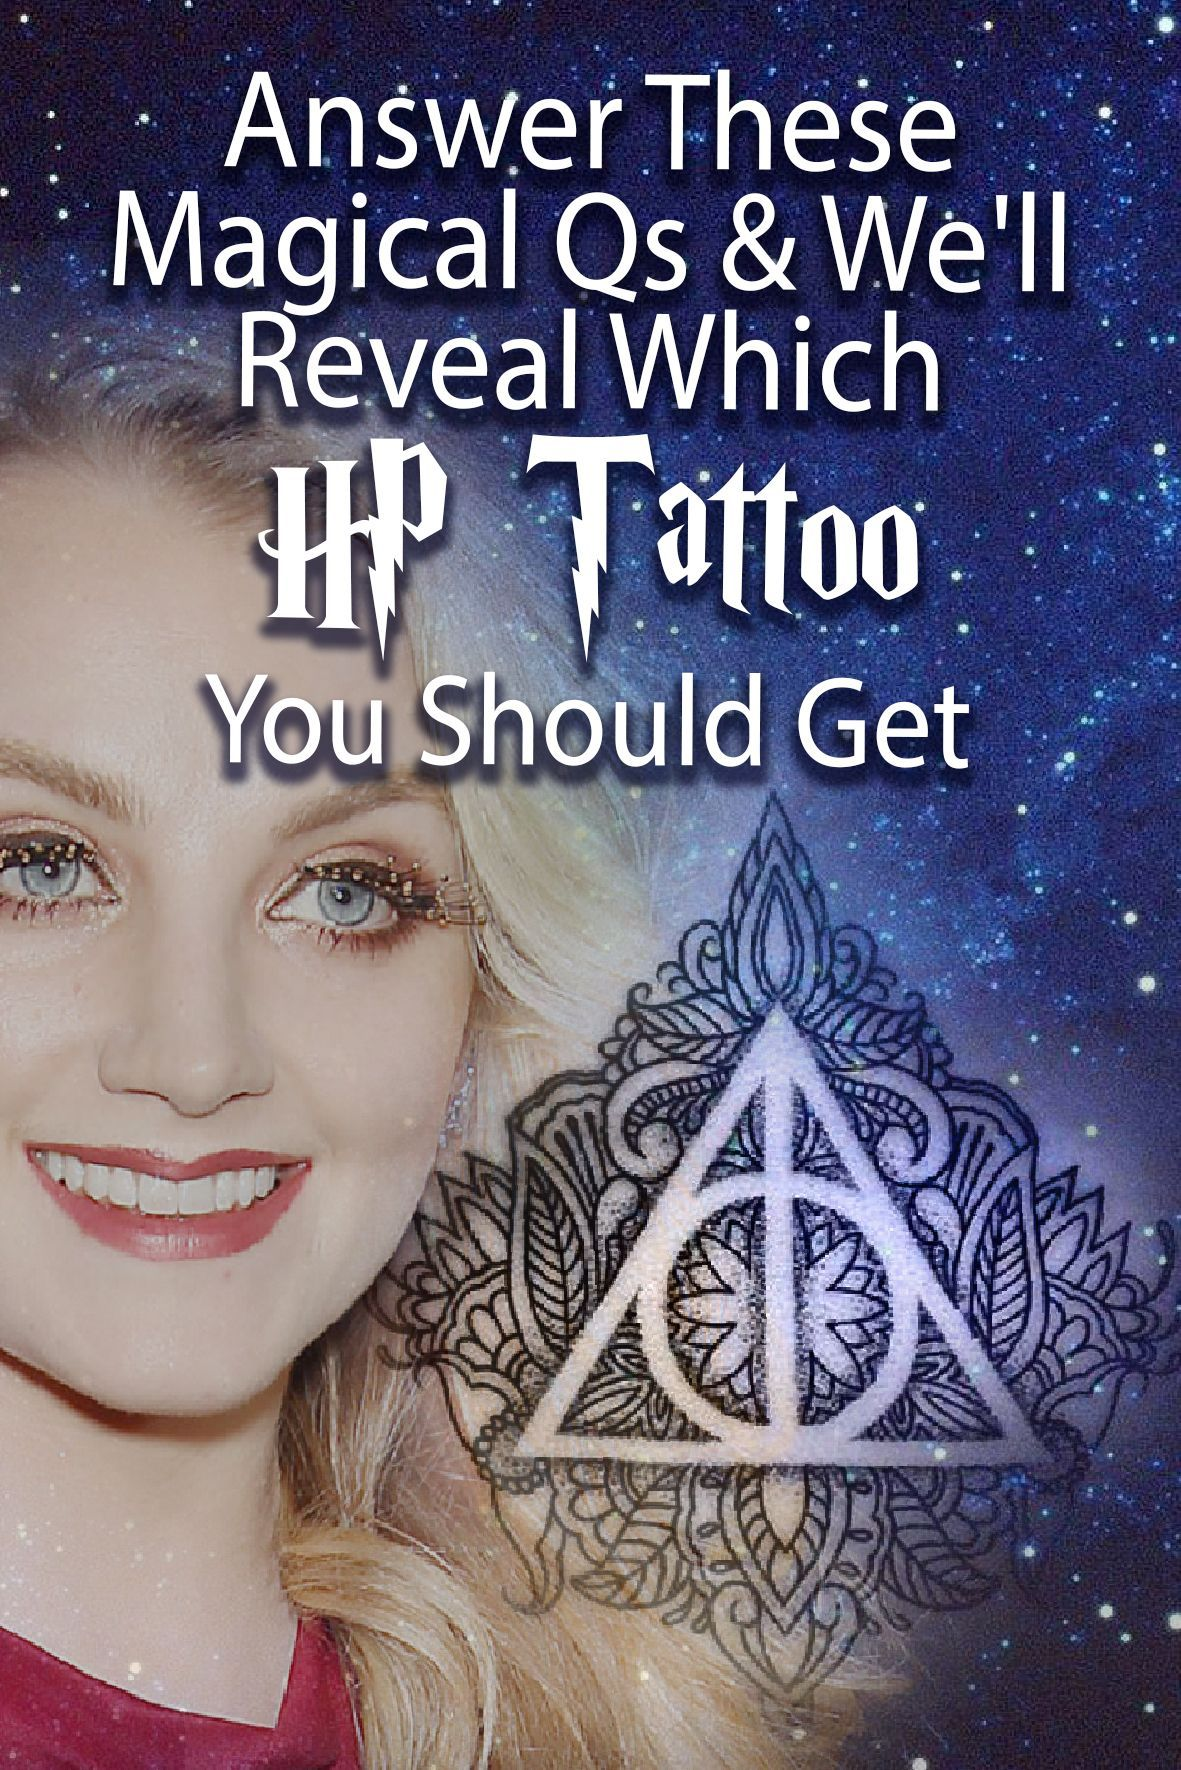 Harry Potter Tattoo Take This Hp Quiz And We Ll Tell You Which Hp Tattoo Is The One For You Harry Potter Person Personlichkeitsquiz Personlichkeitstest Quiz